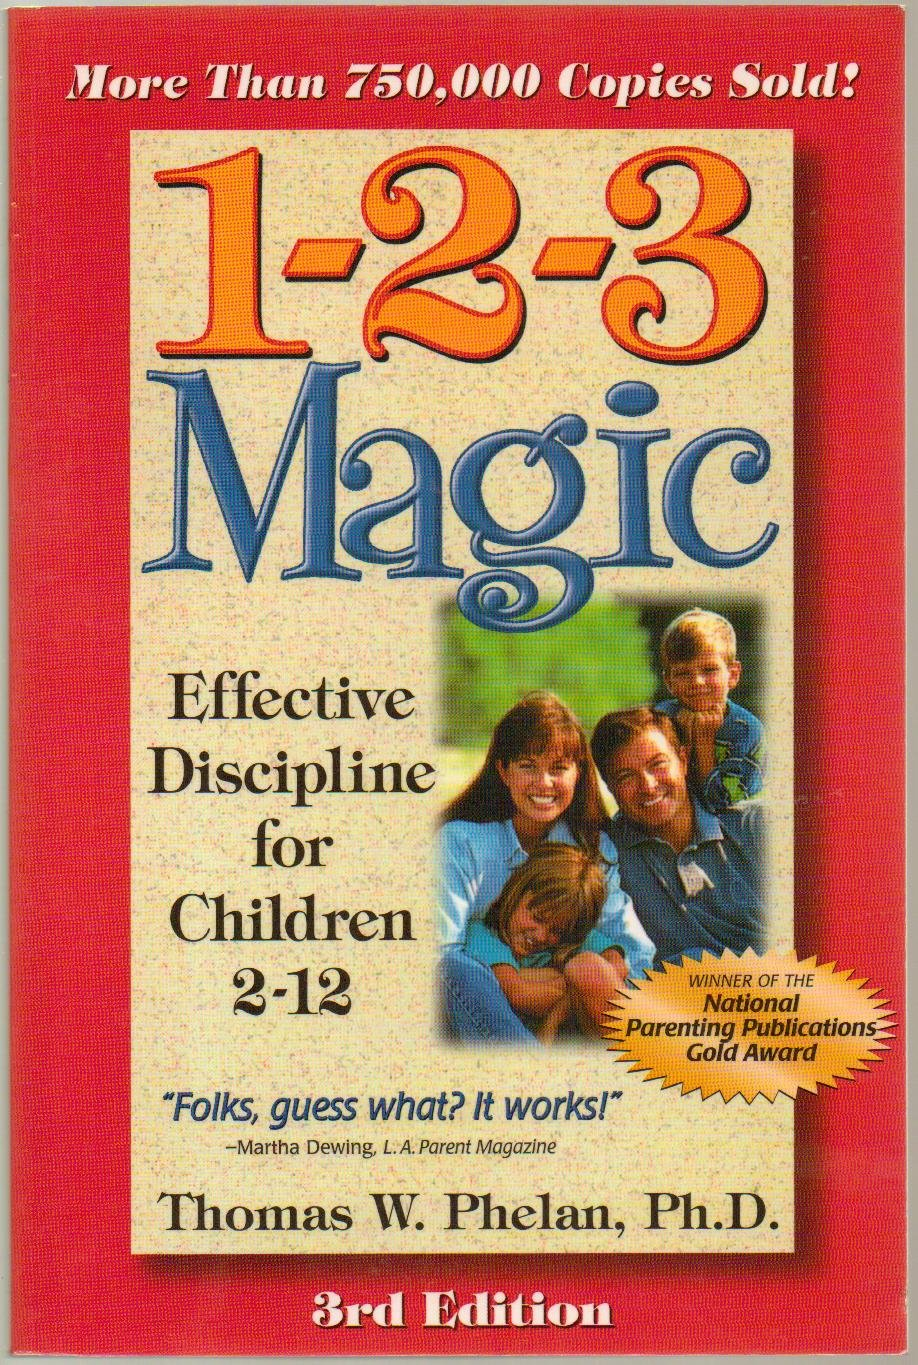 Download 1 2 3 Magic, 1-2-3 Magic - Effective Discipline for Children Ages 2-12 - 3rd Edition - Controlling Obnoxious Behavior, Encouraging Good Behavior, Strenthening Your Relationship - Paperback - THIRD Edition, 2nd Printing 2003 ebook